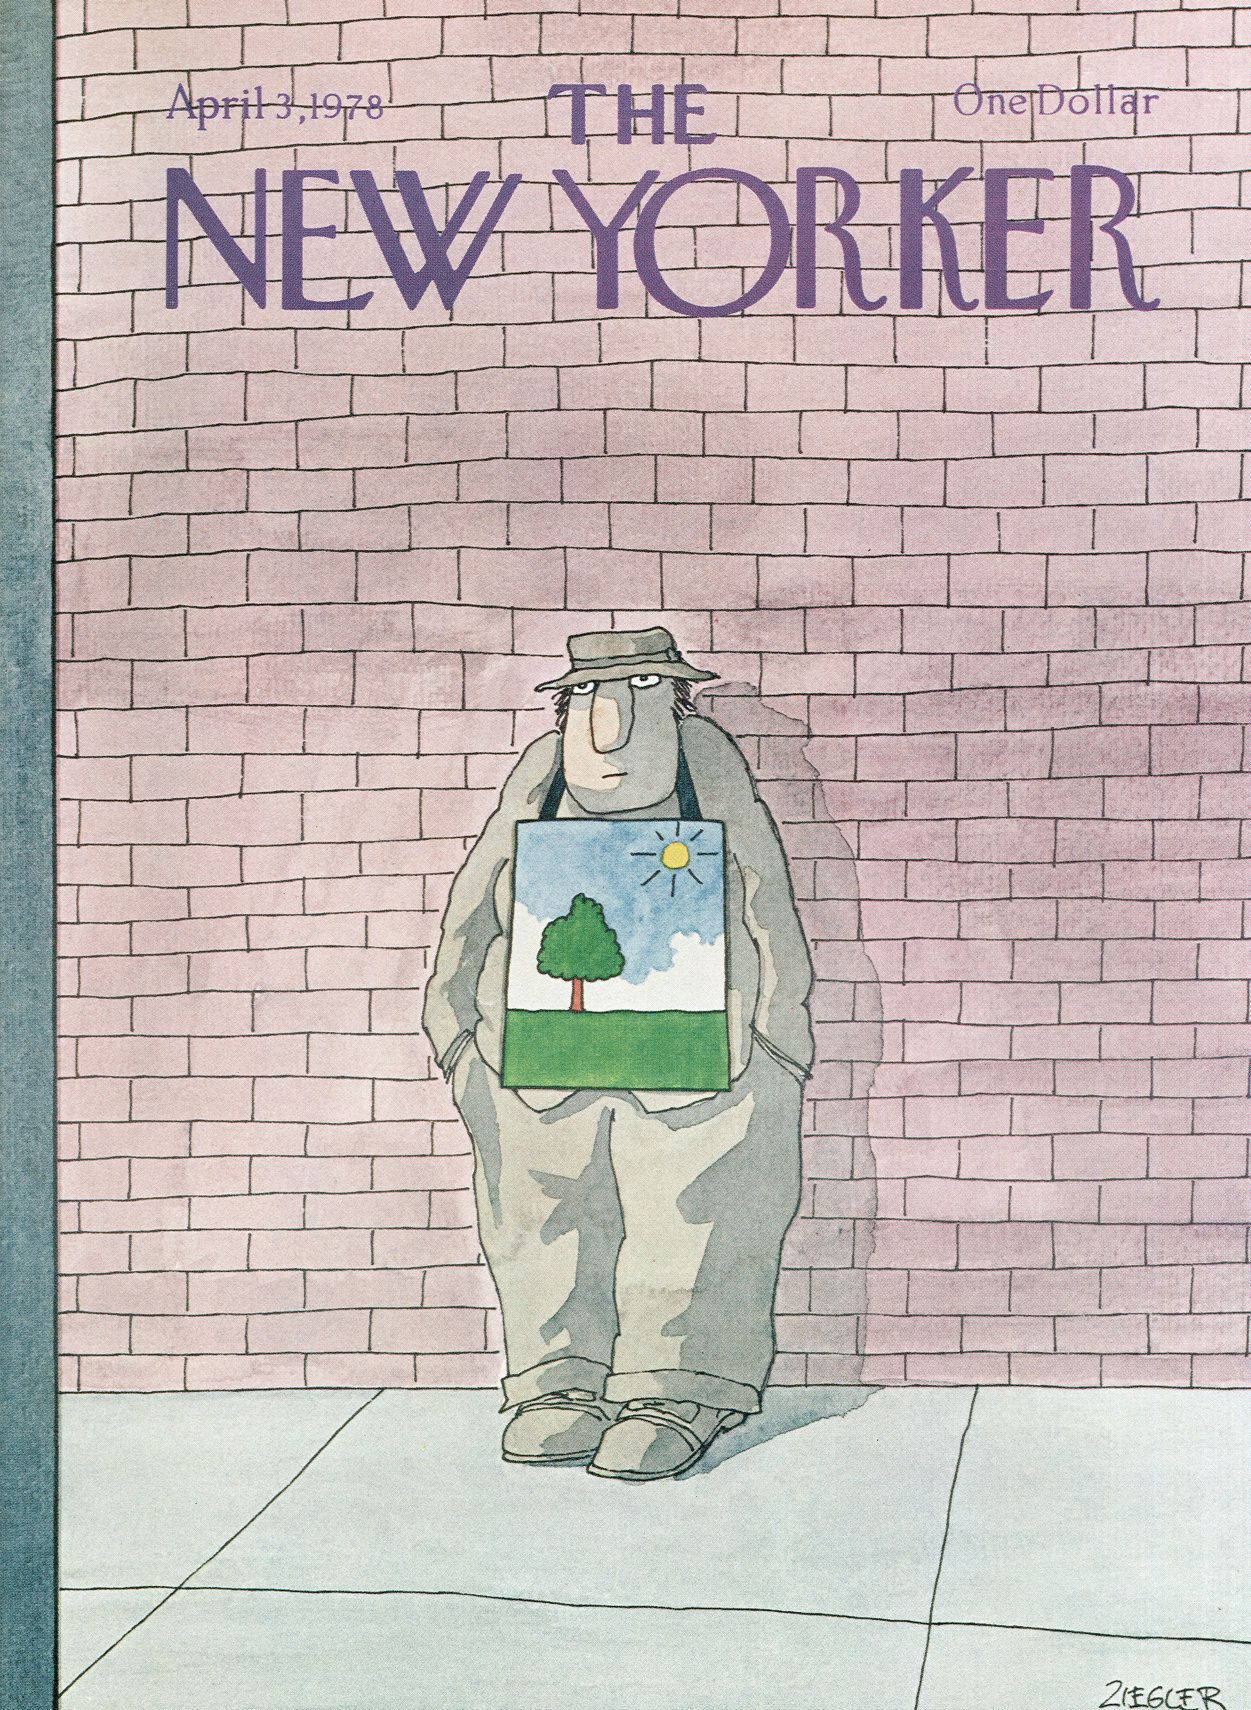 The New Yorker - Monday, April 3, 1978 - Issue # 2772 - Vol. 54 - N° 7 - Cover by : Jack Ziegler